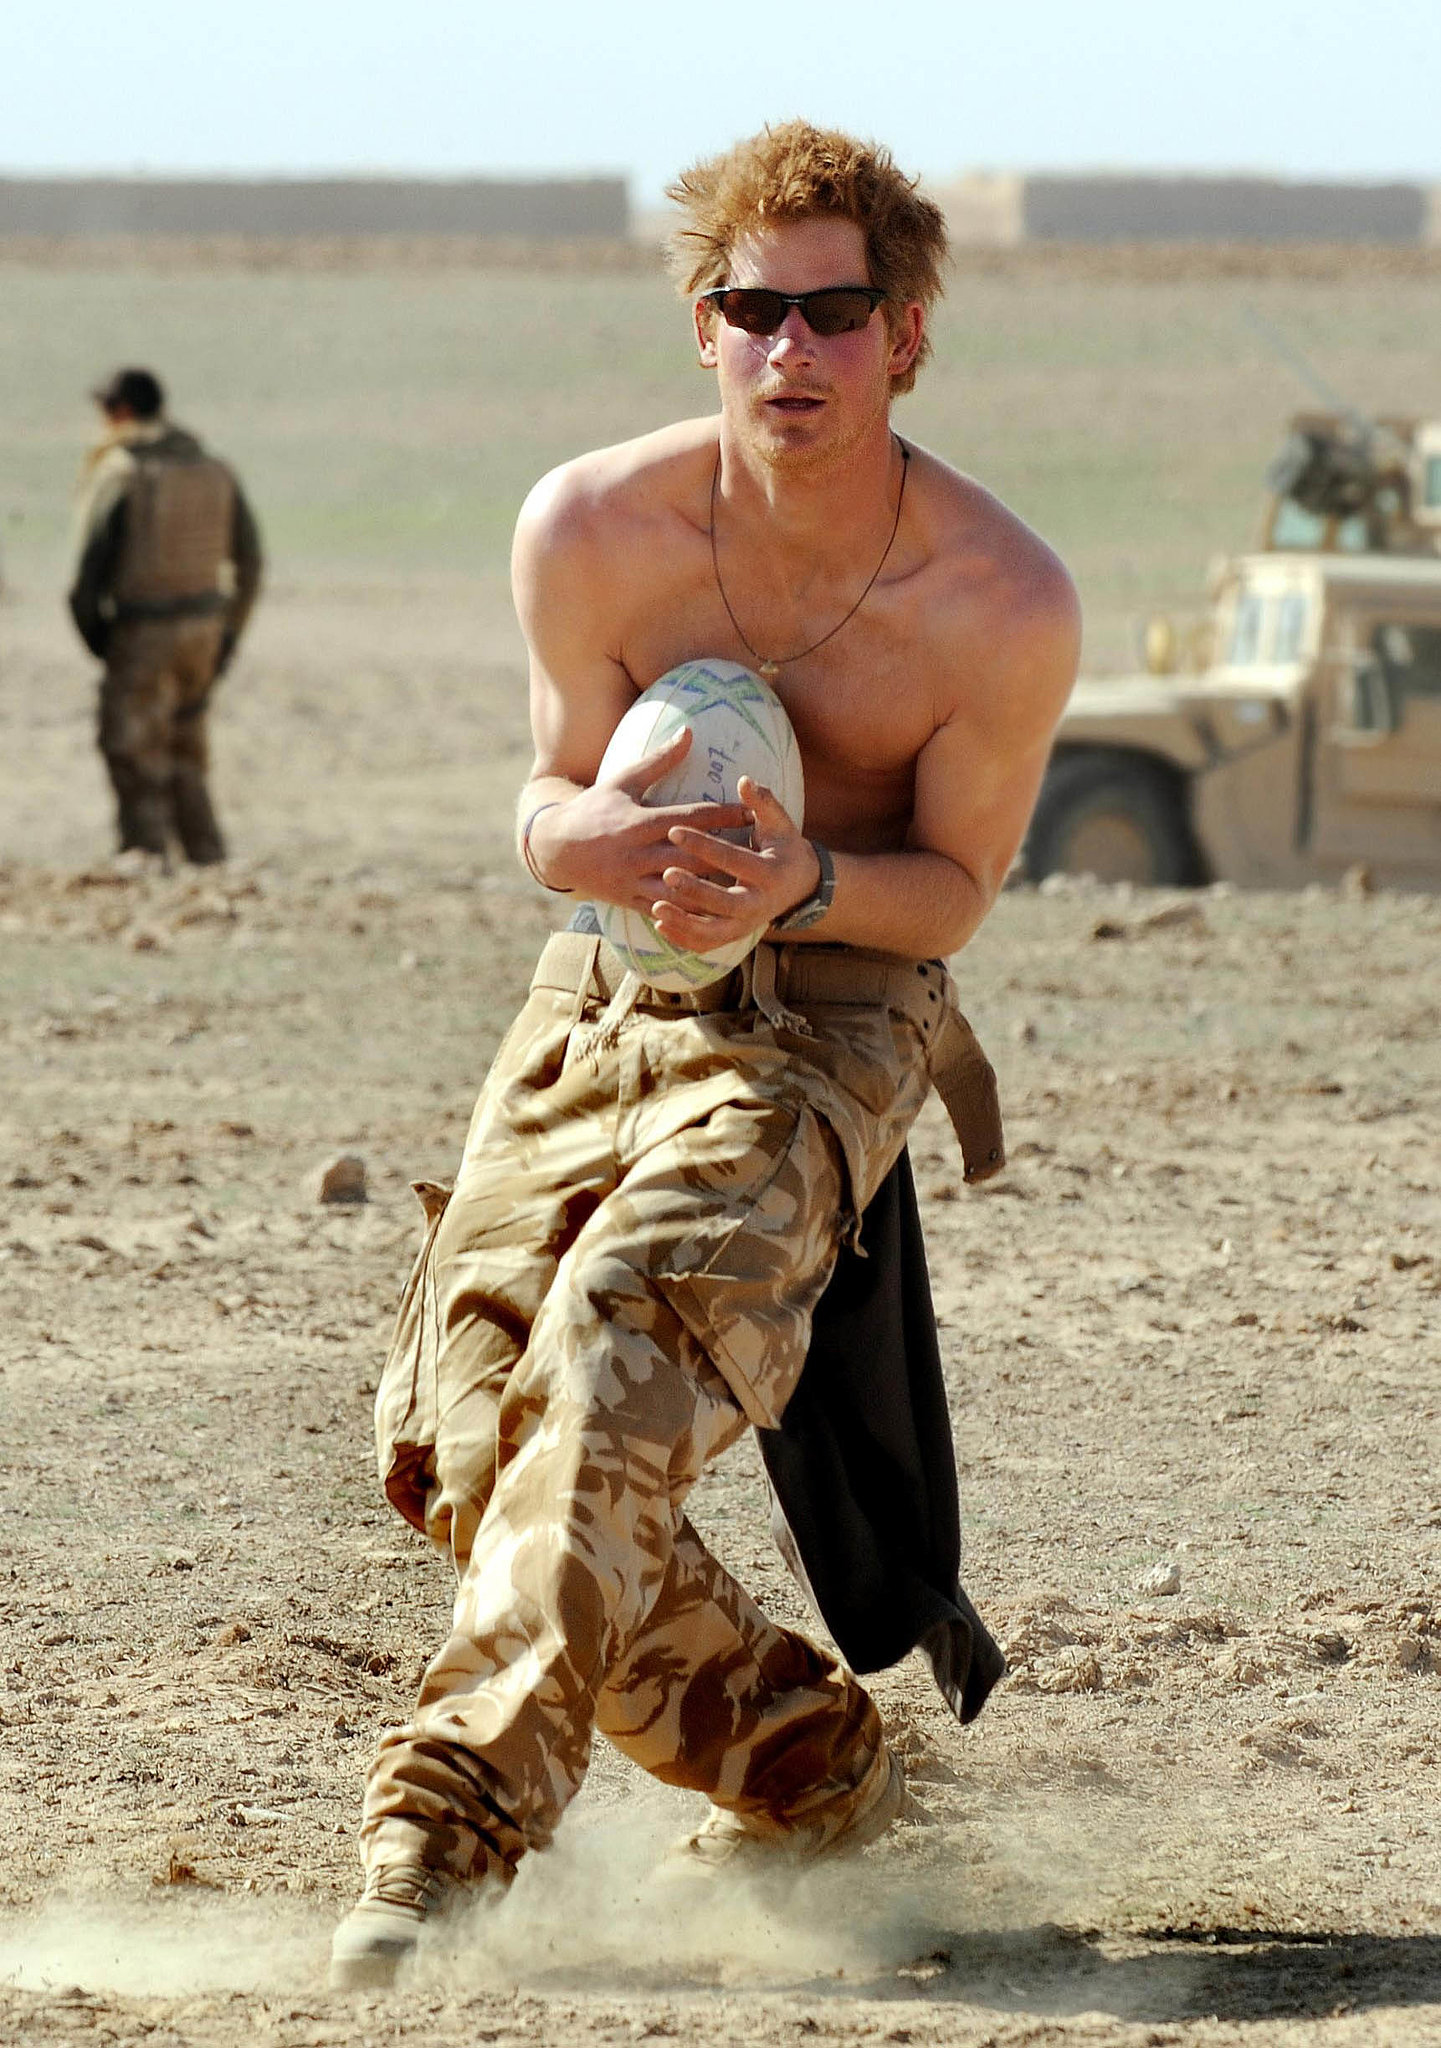 In 2008, Prince Harry went shirtless to play rugby in Afghanistan.